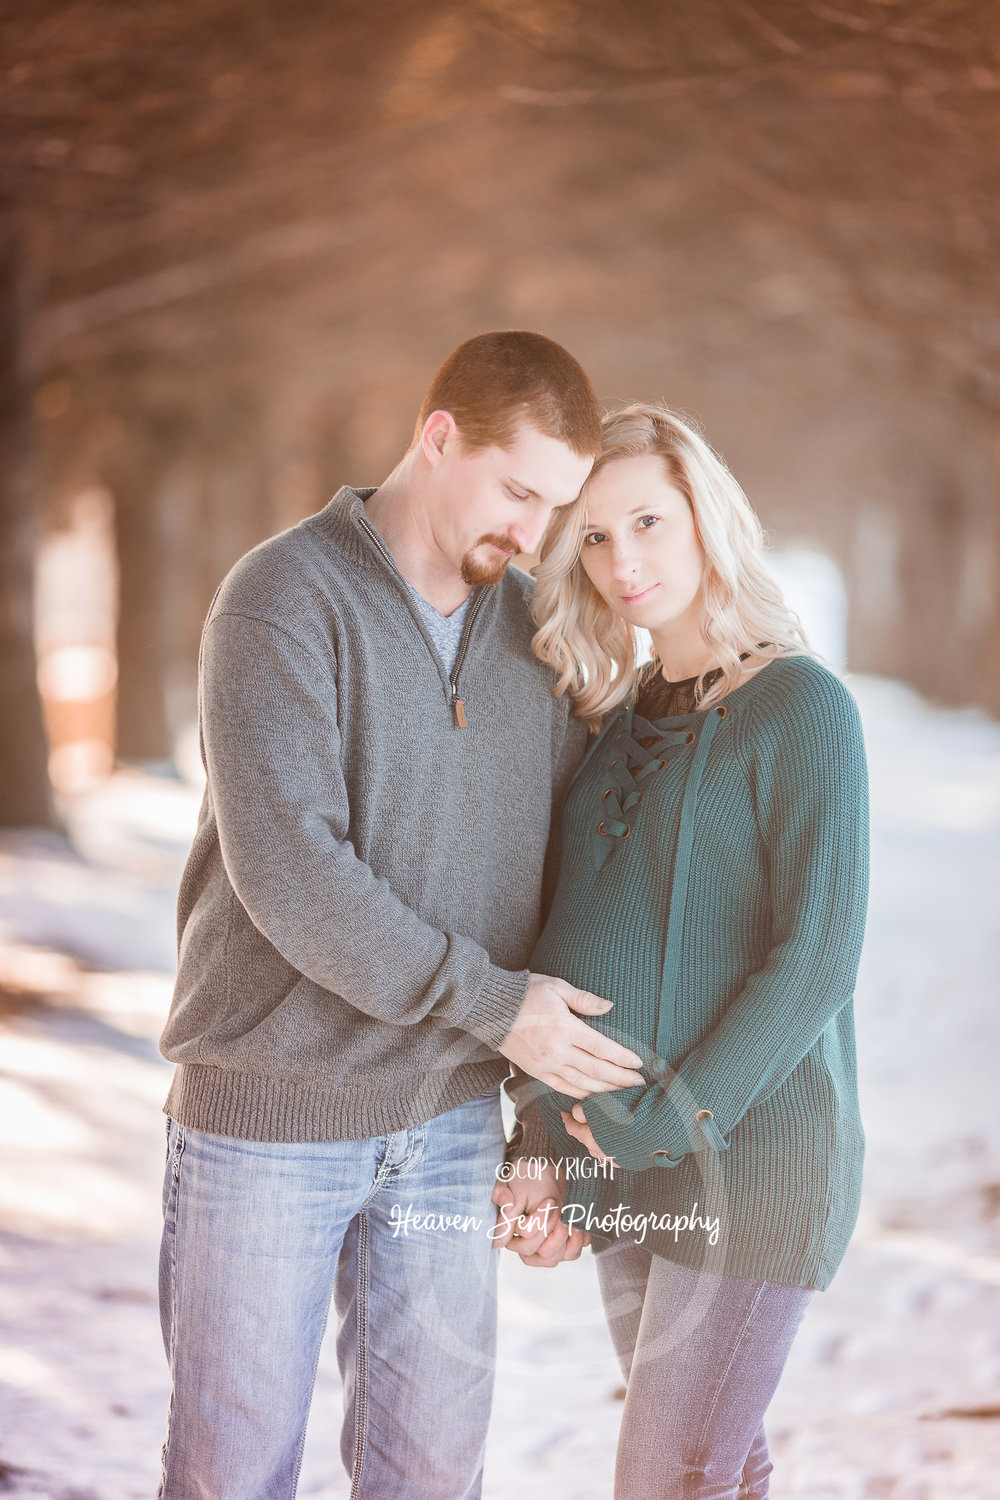 courtney_maternity (52 of 54).jpg